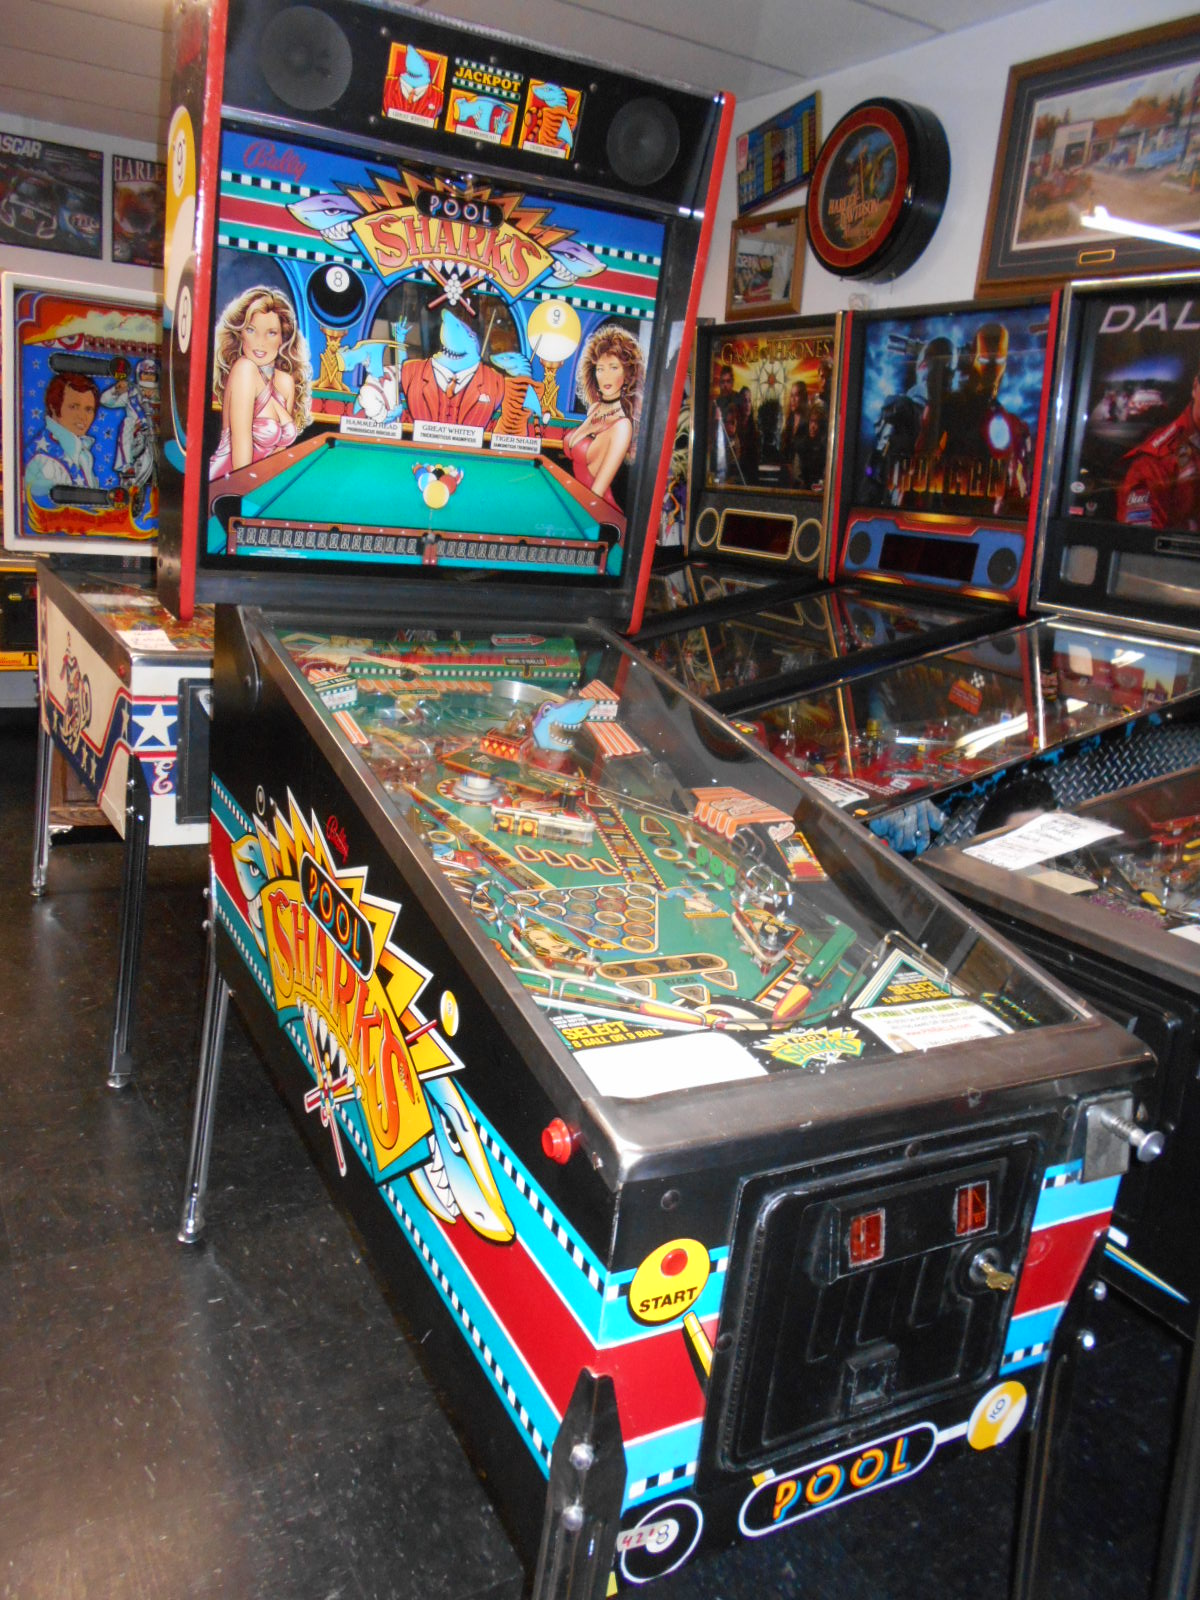 POOL SHARKS Pinball Machine Game for sale by BALLY - LED